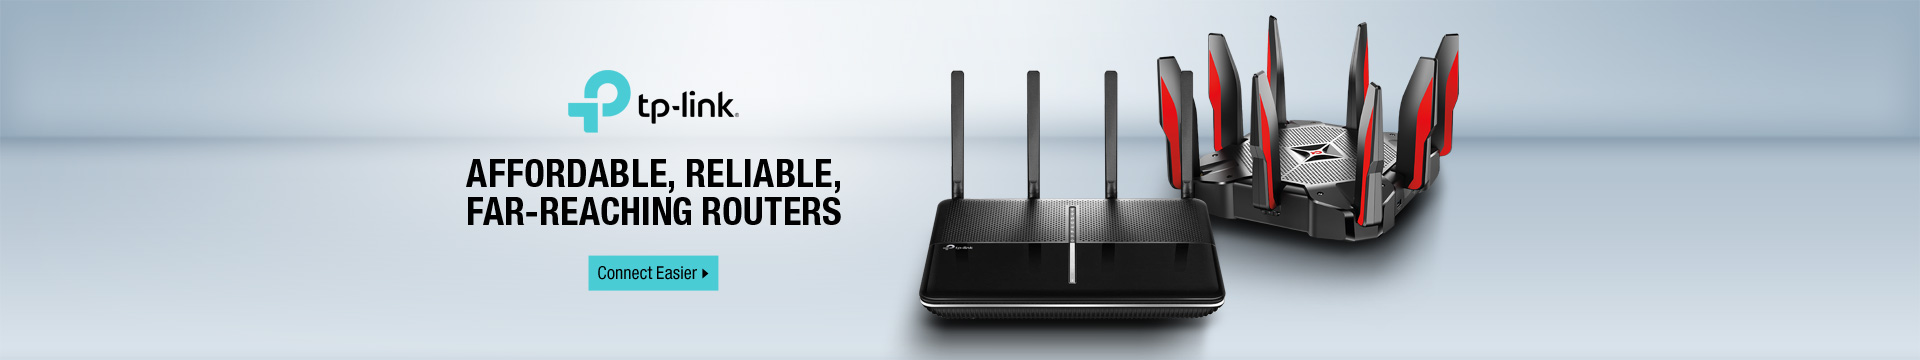 AFFORDABLE, RELIABLE, FAR-REACHING ROUTERS